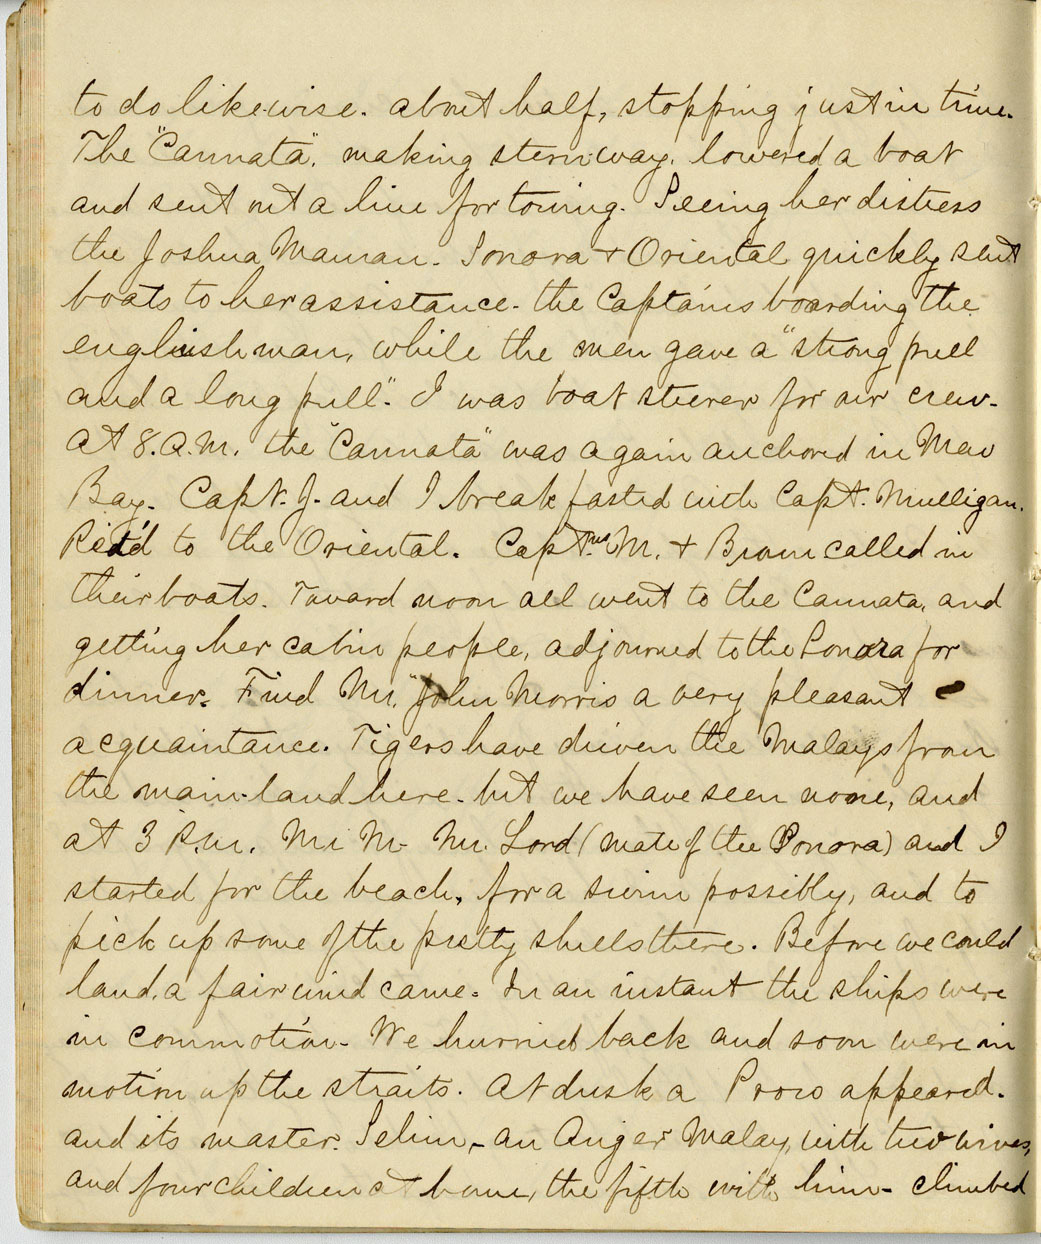 Cornelius Gold Journal, Page 27